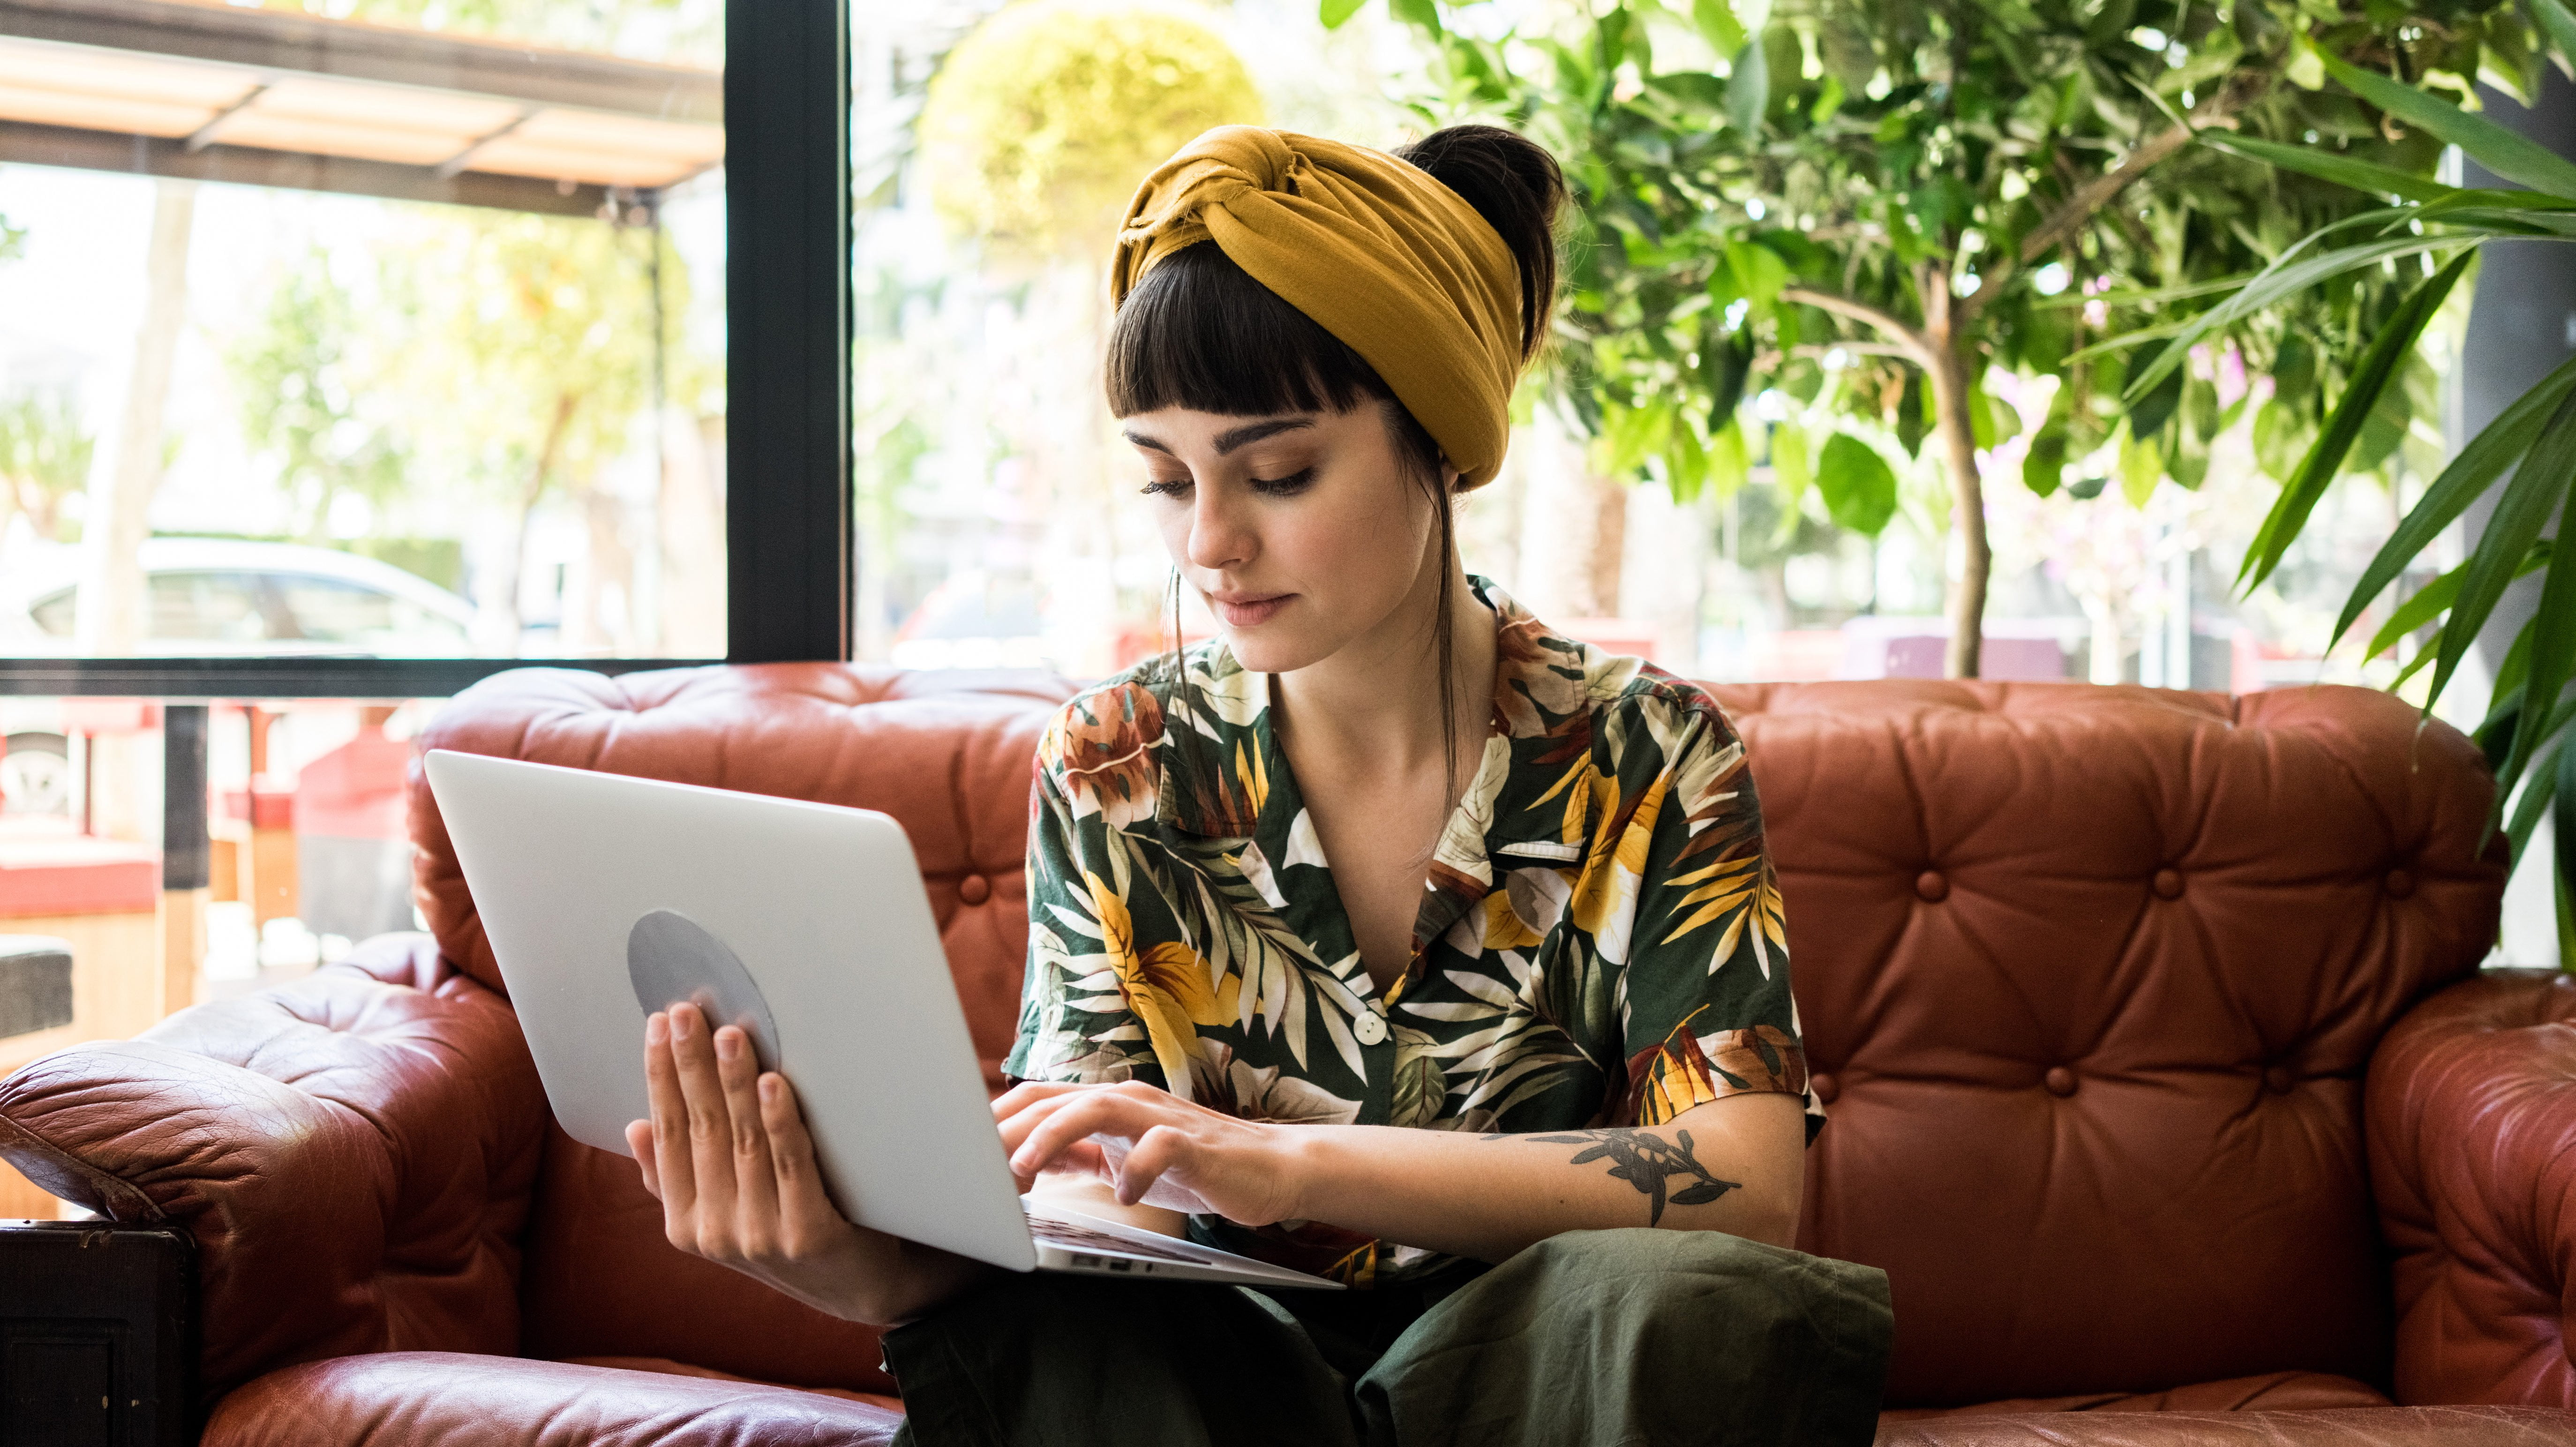 Pretty brunette girl checks her mail on small portable laptop while waiting her order in cafe shop. She travels during her summer vacations and sometimes works remotely e1567786114336 - How Bad Is It to Use Public WiFi?